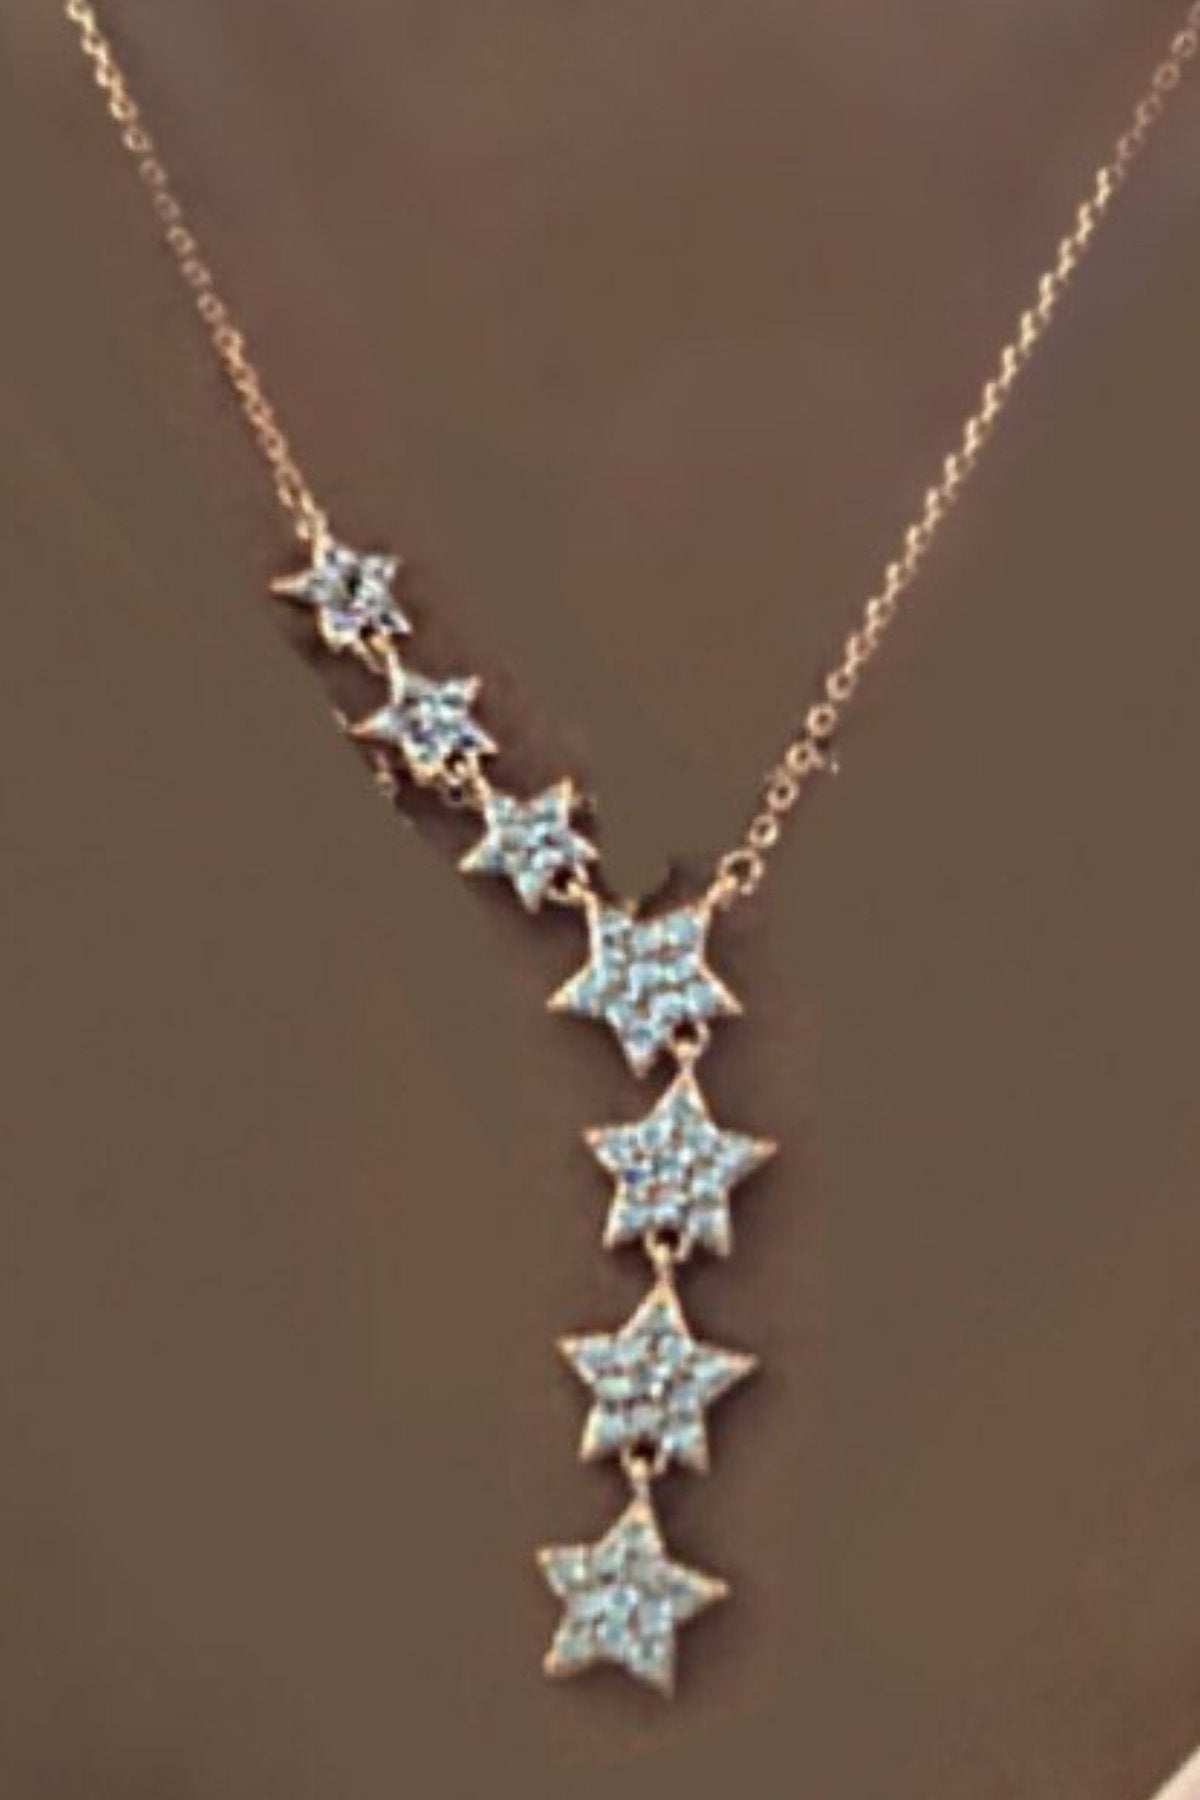 7 Stars Dainty Necklace 14k Gold Plated